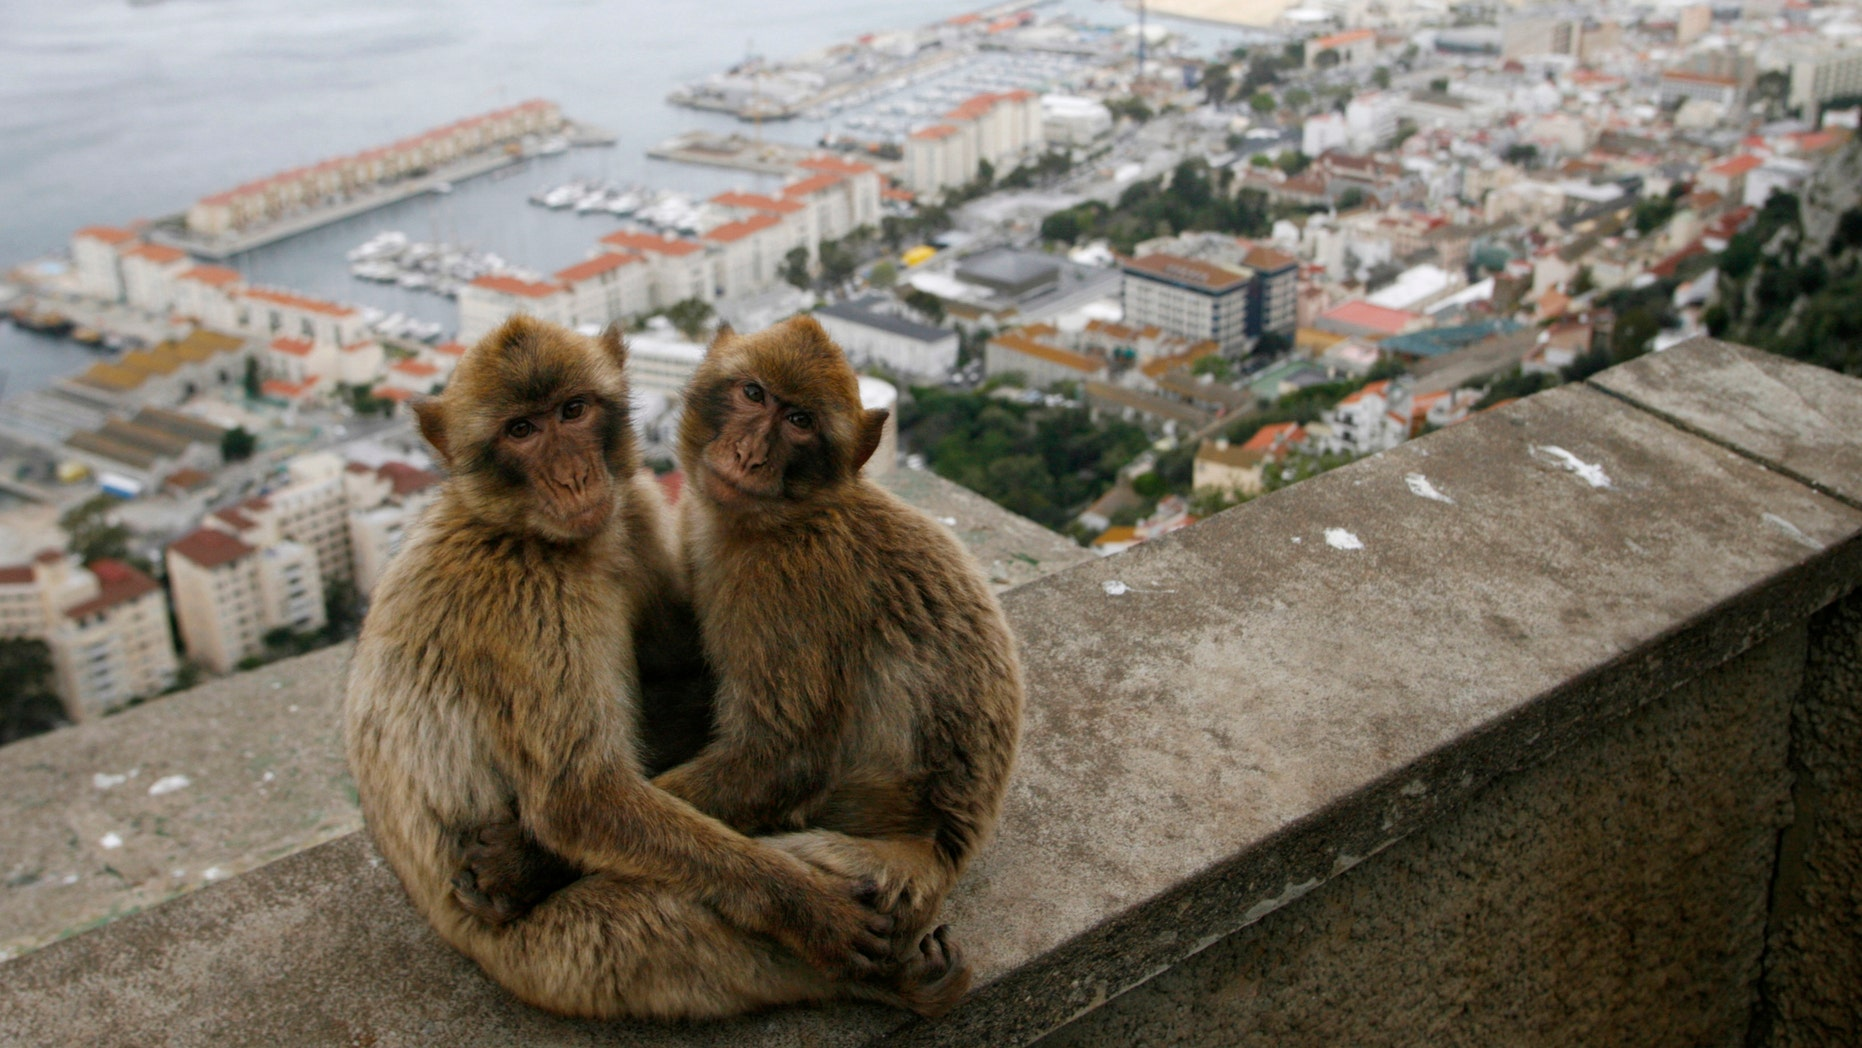 Gibraltar monkeys sit on the top of the Rock of Gibraltar overlooking the colony.